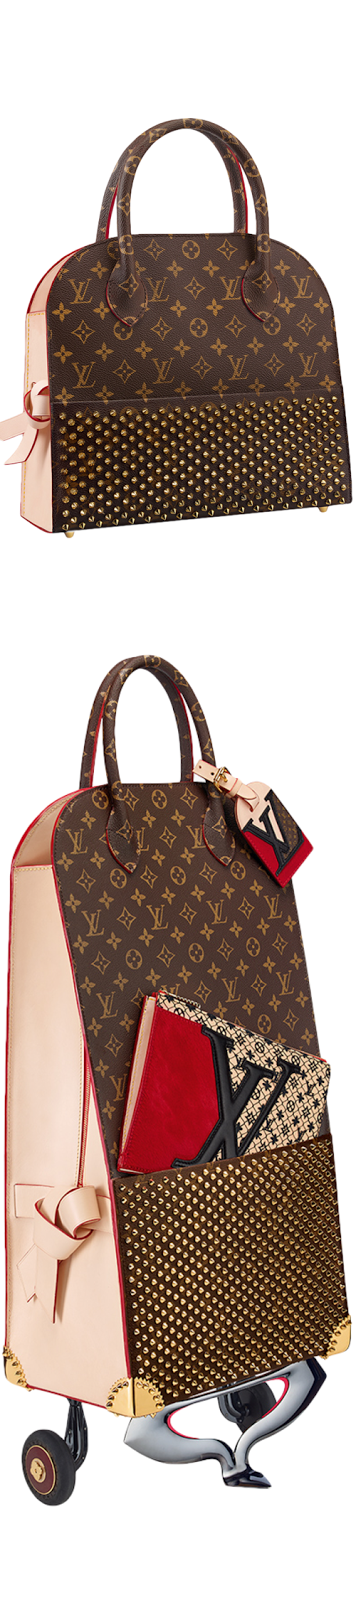 100 Best Louis Vuitton And Louboutins Images In 2020 Louis Vuitton Louis Vuitton